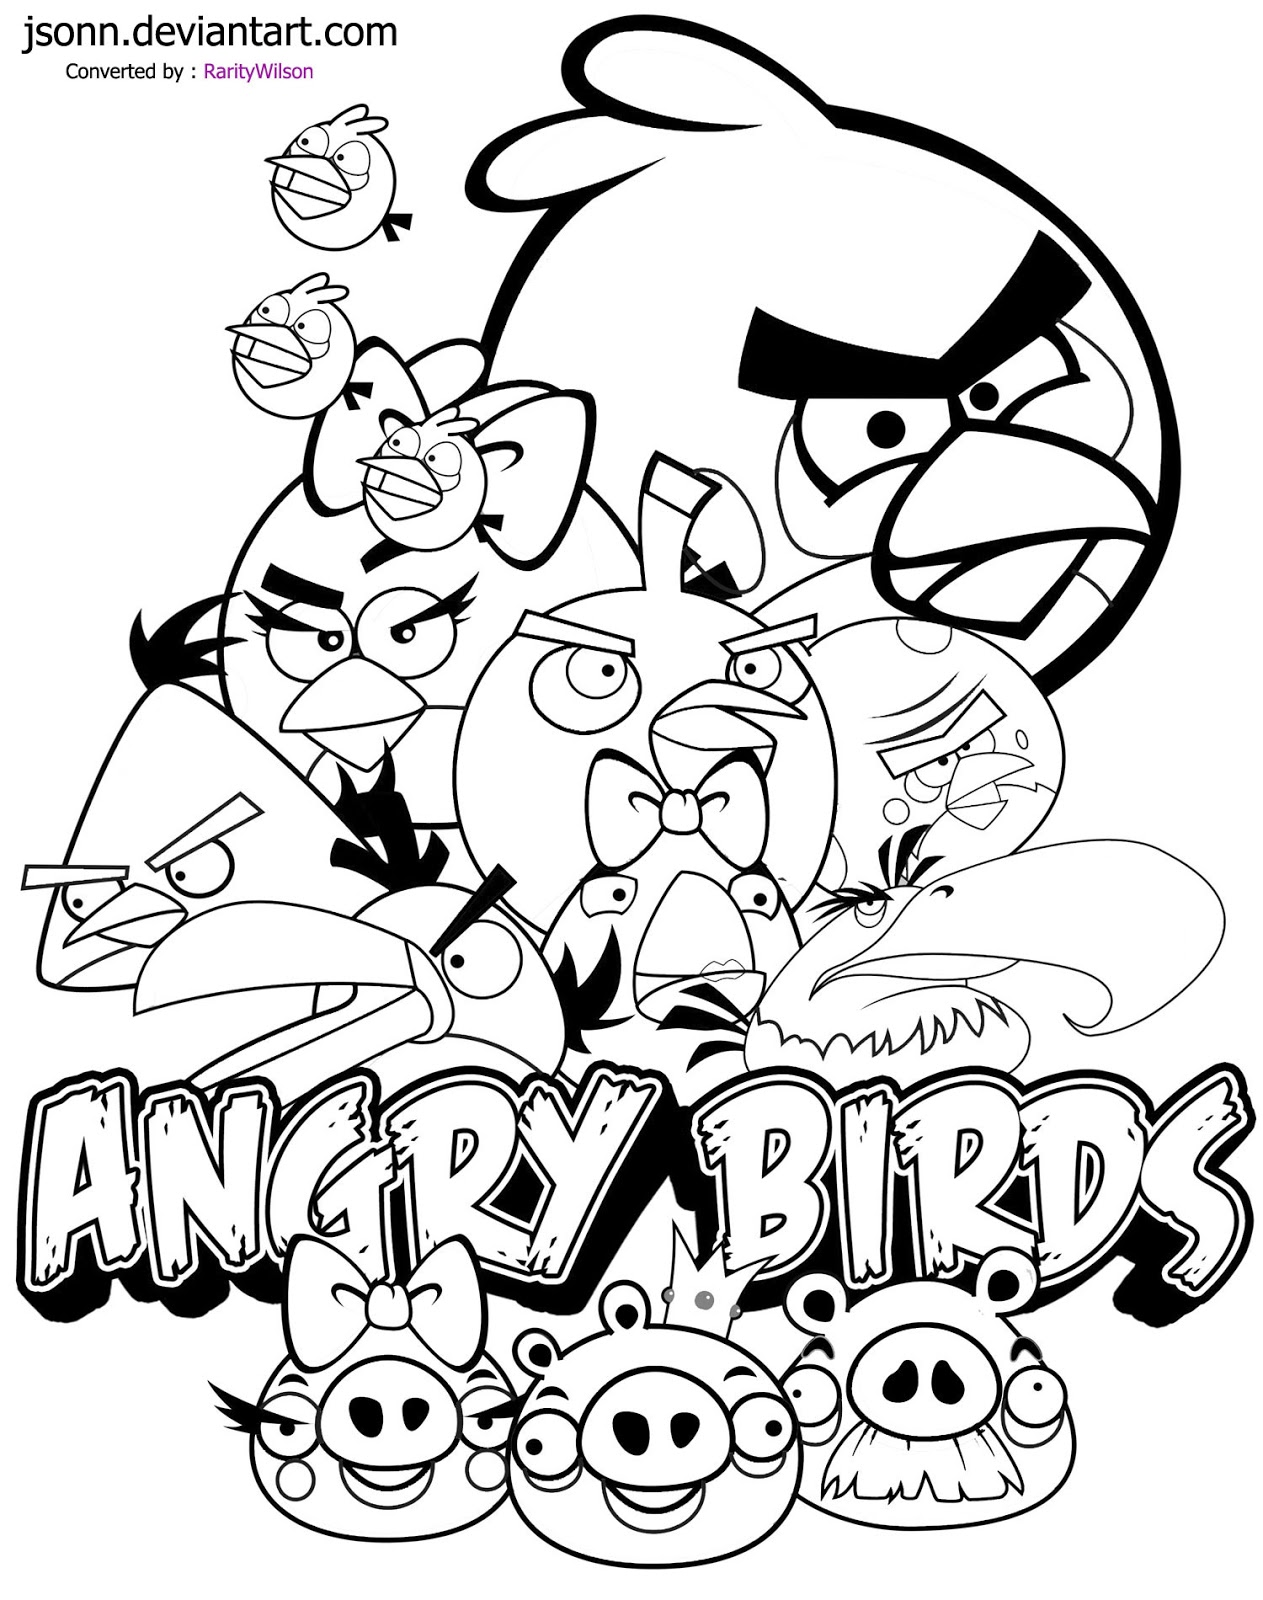 Angry birds coloring pages team colors for Bird coloring pages to print